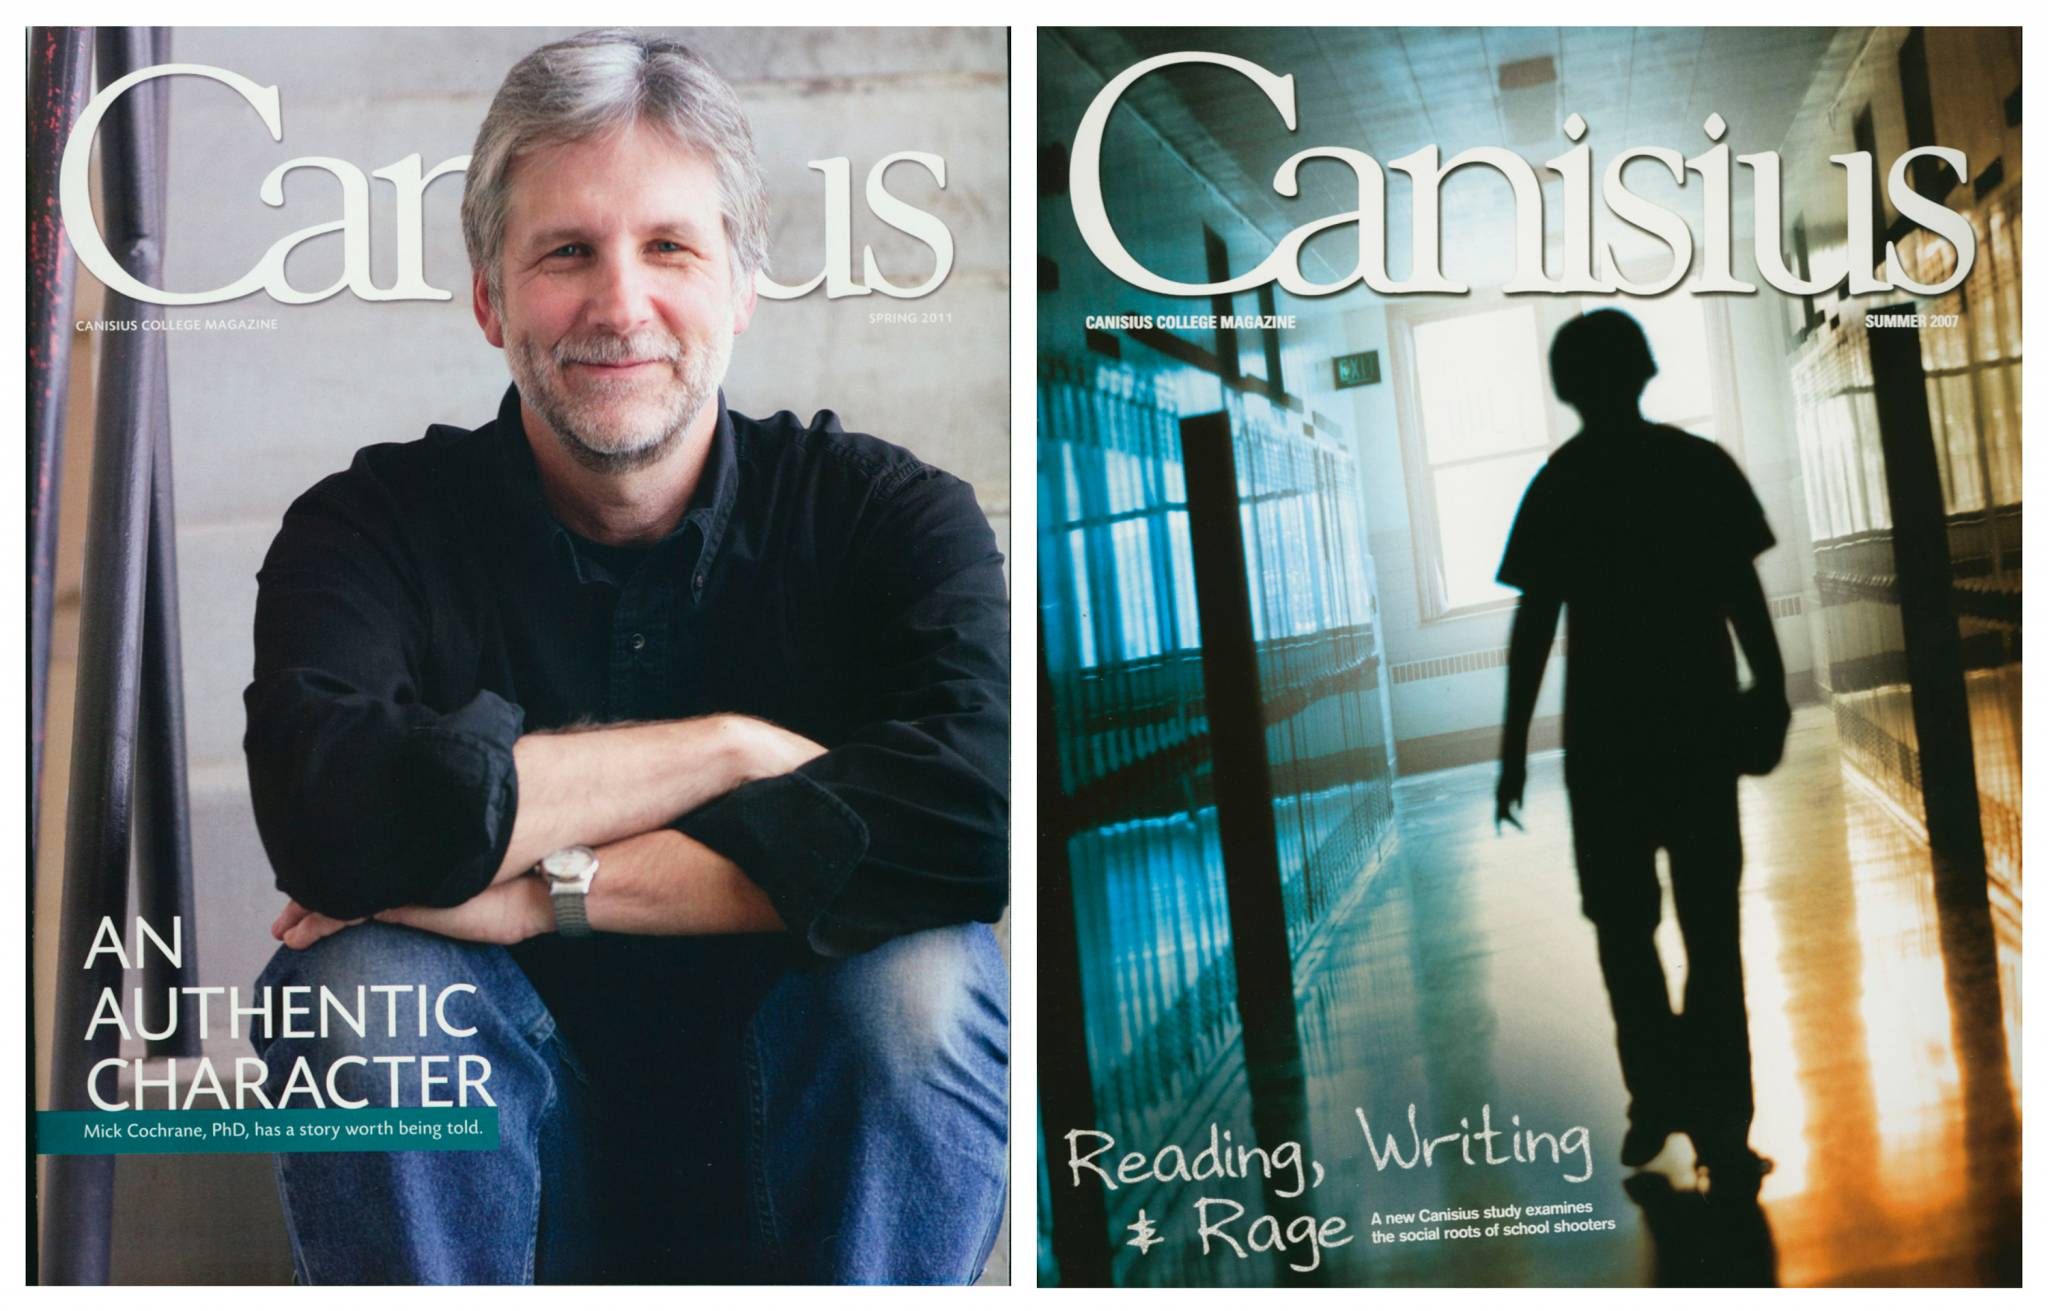 canisius college alumni magazine author mick cochrane